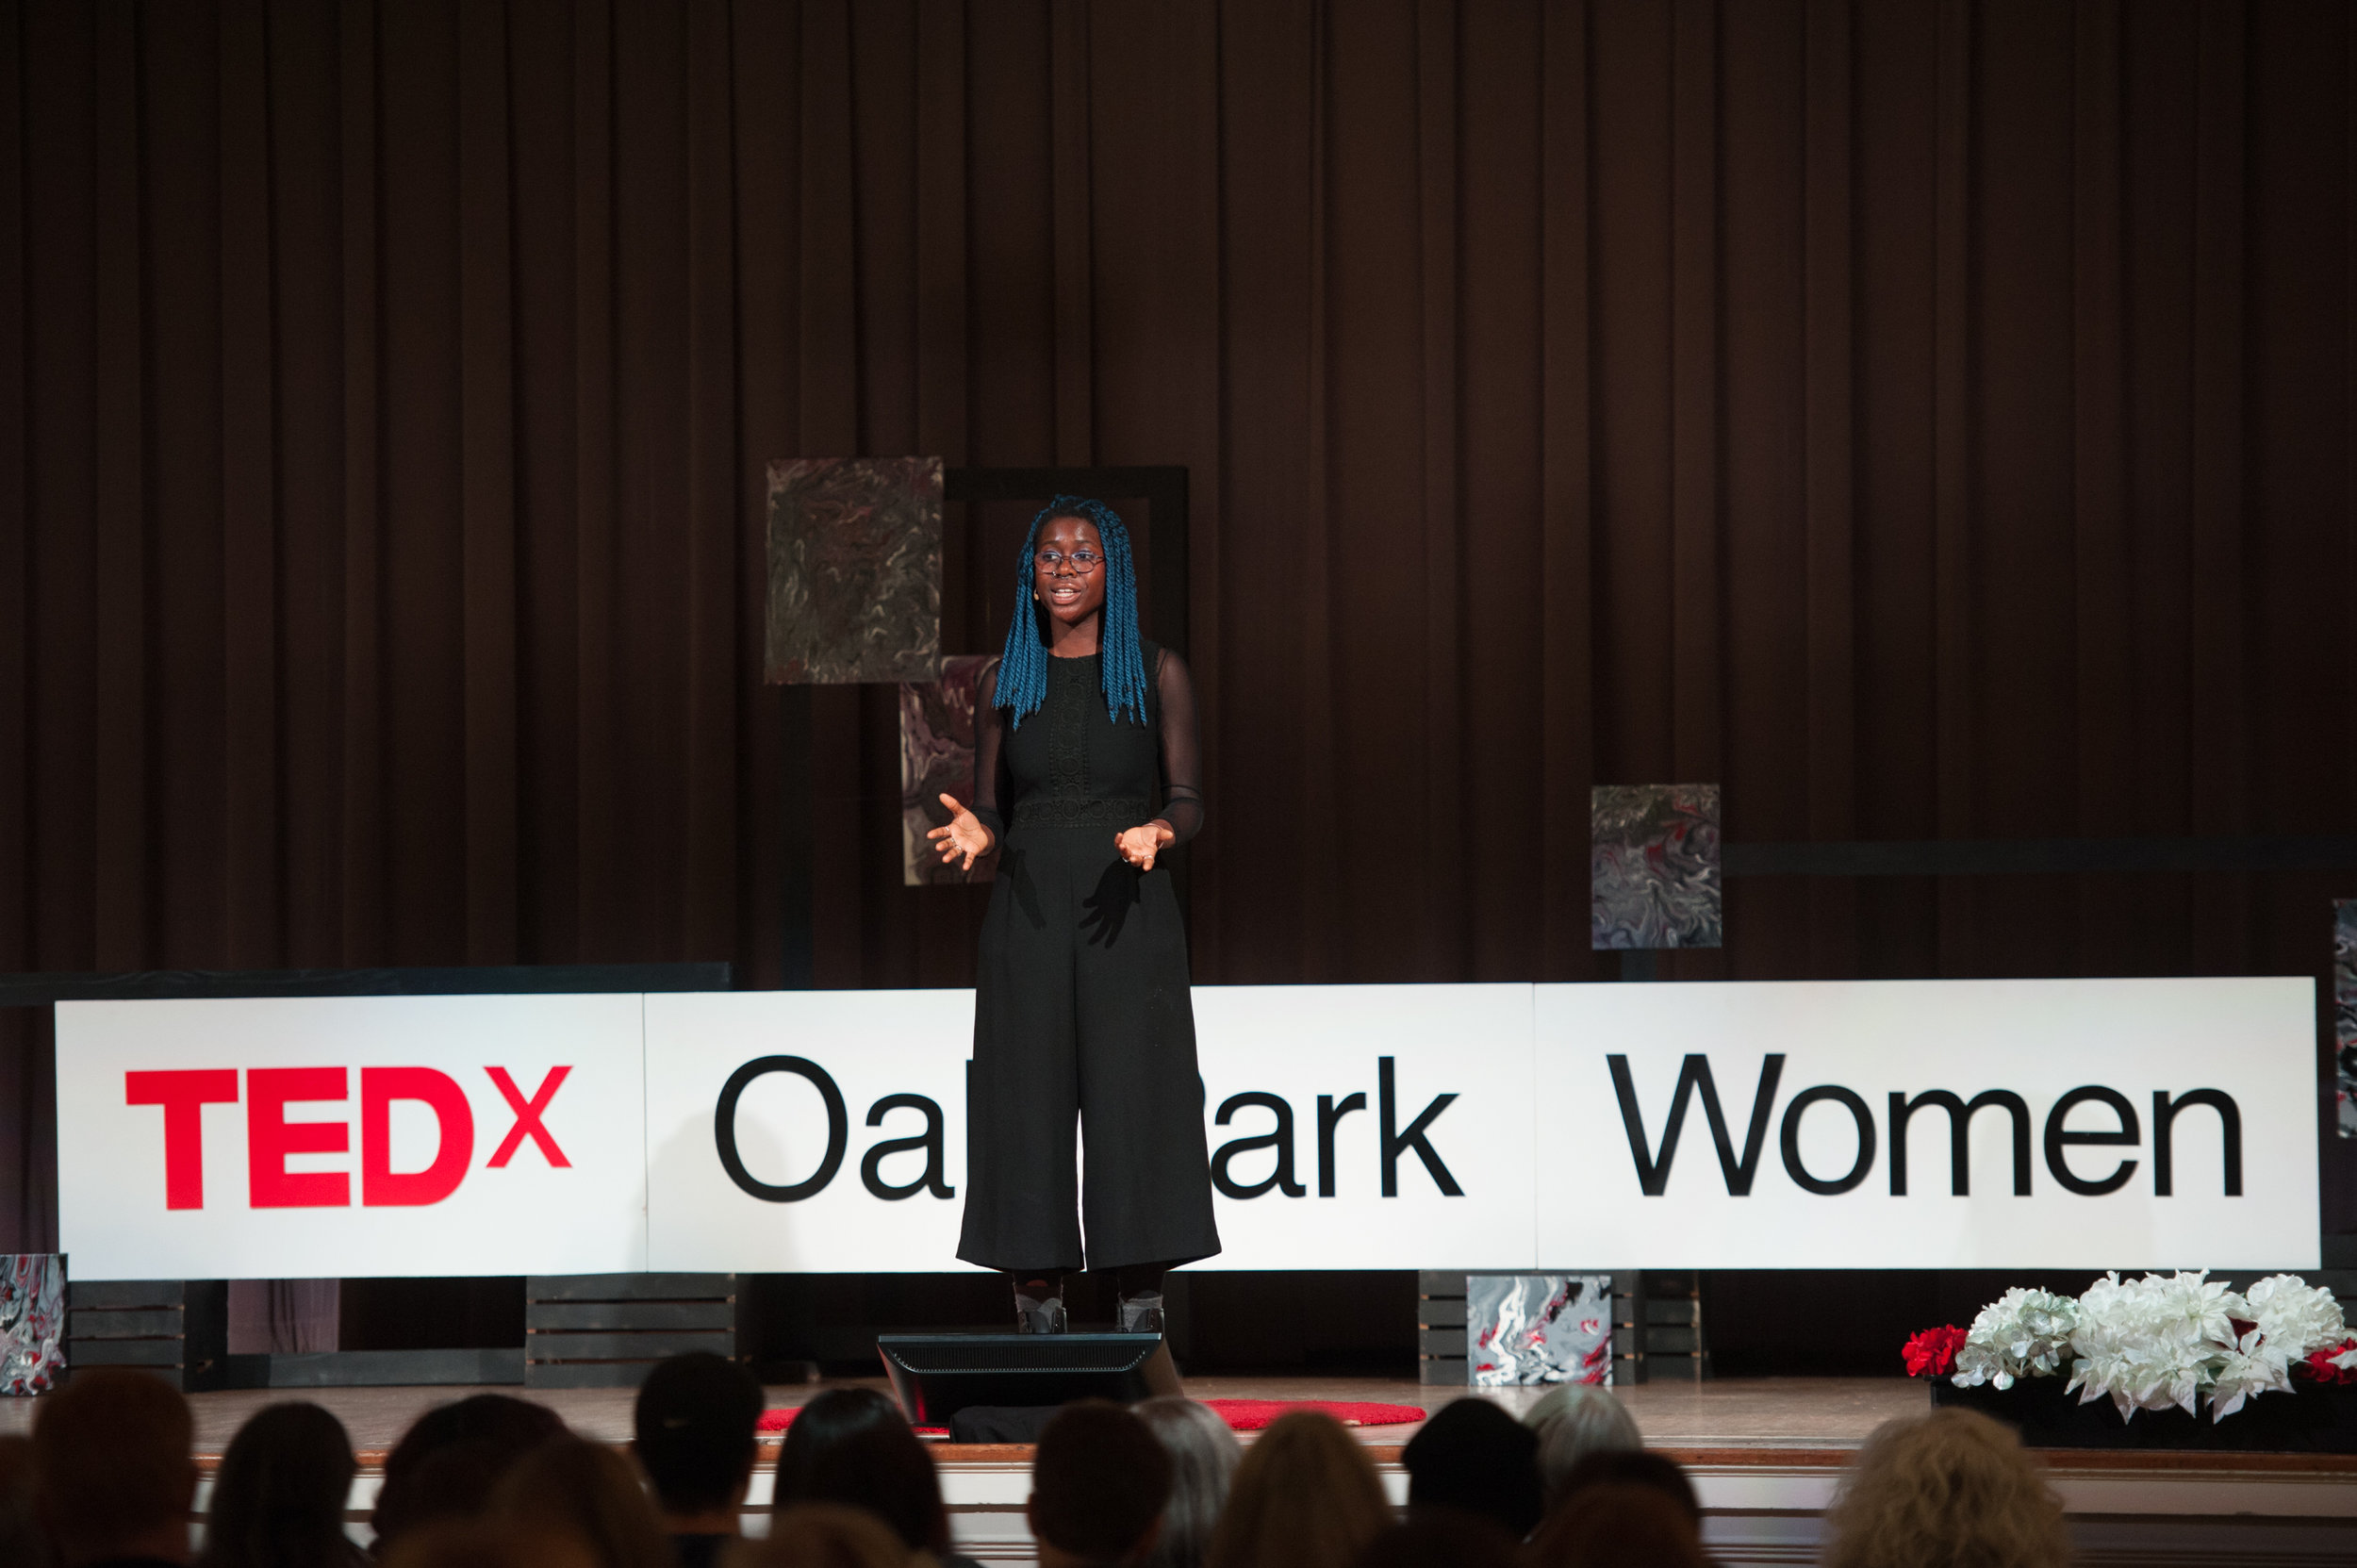 ©Steven E Gross